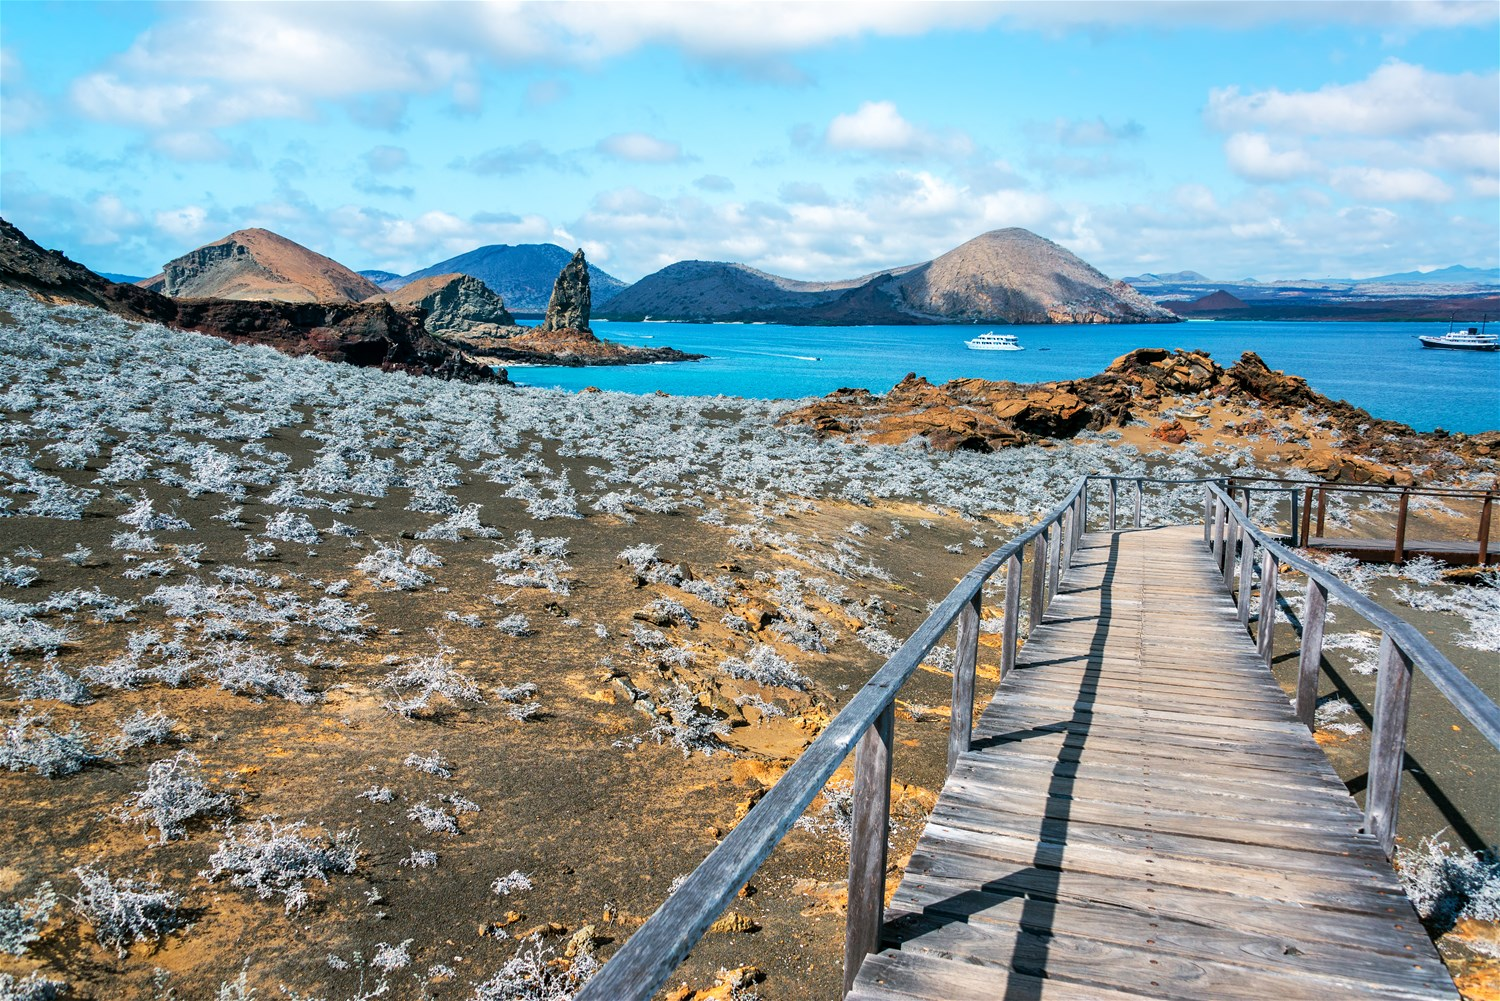 The Best Time to Visit the Galapagos Islands - Weather and Wildlife guide